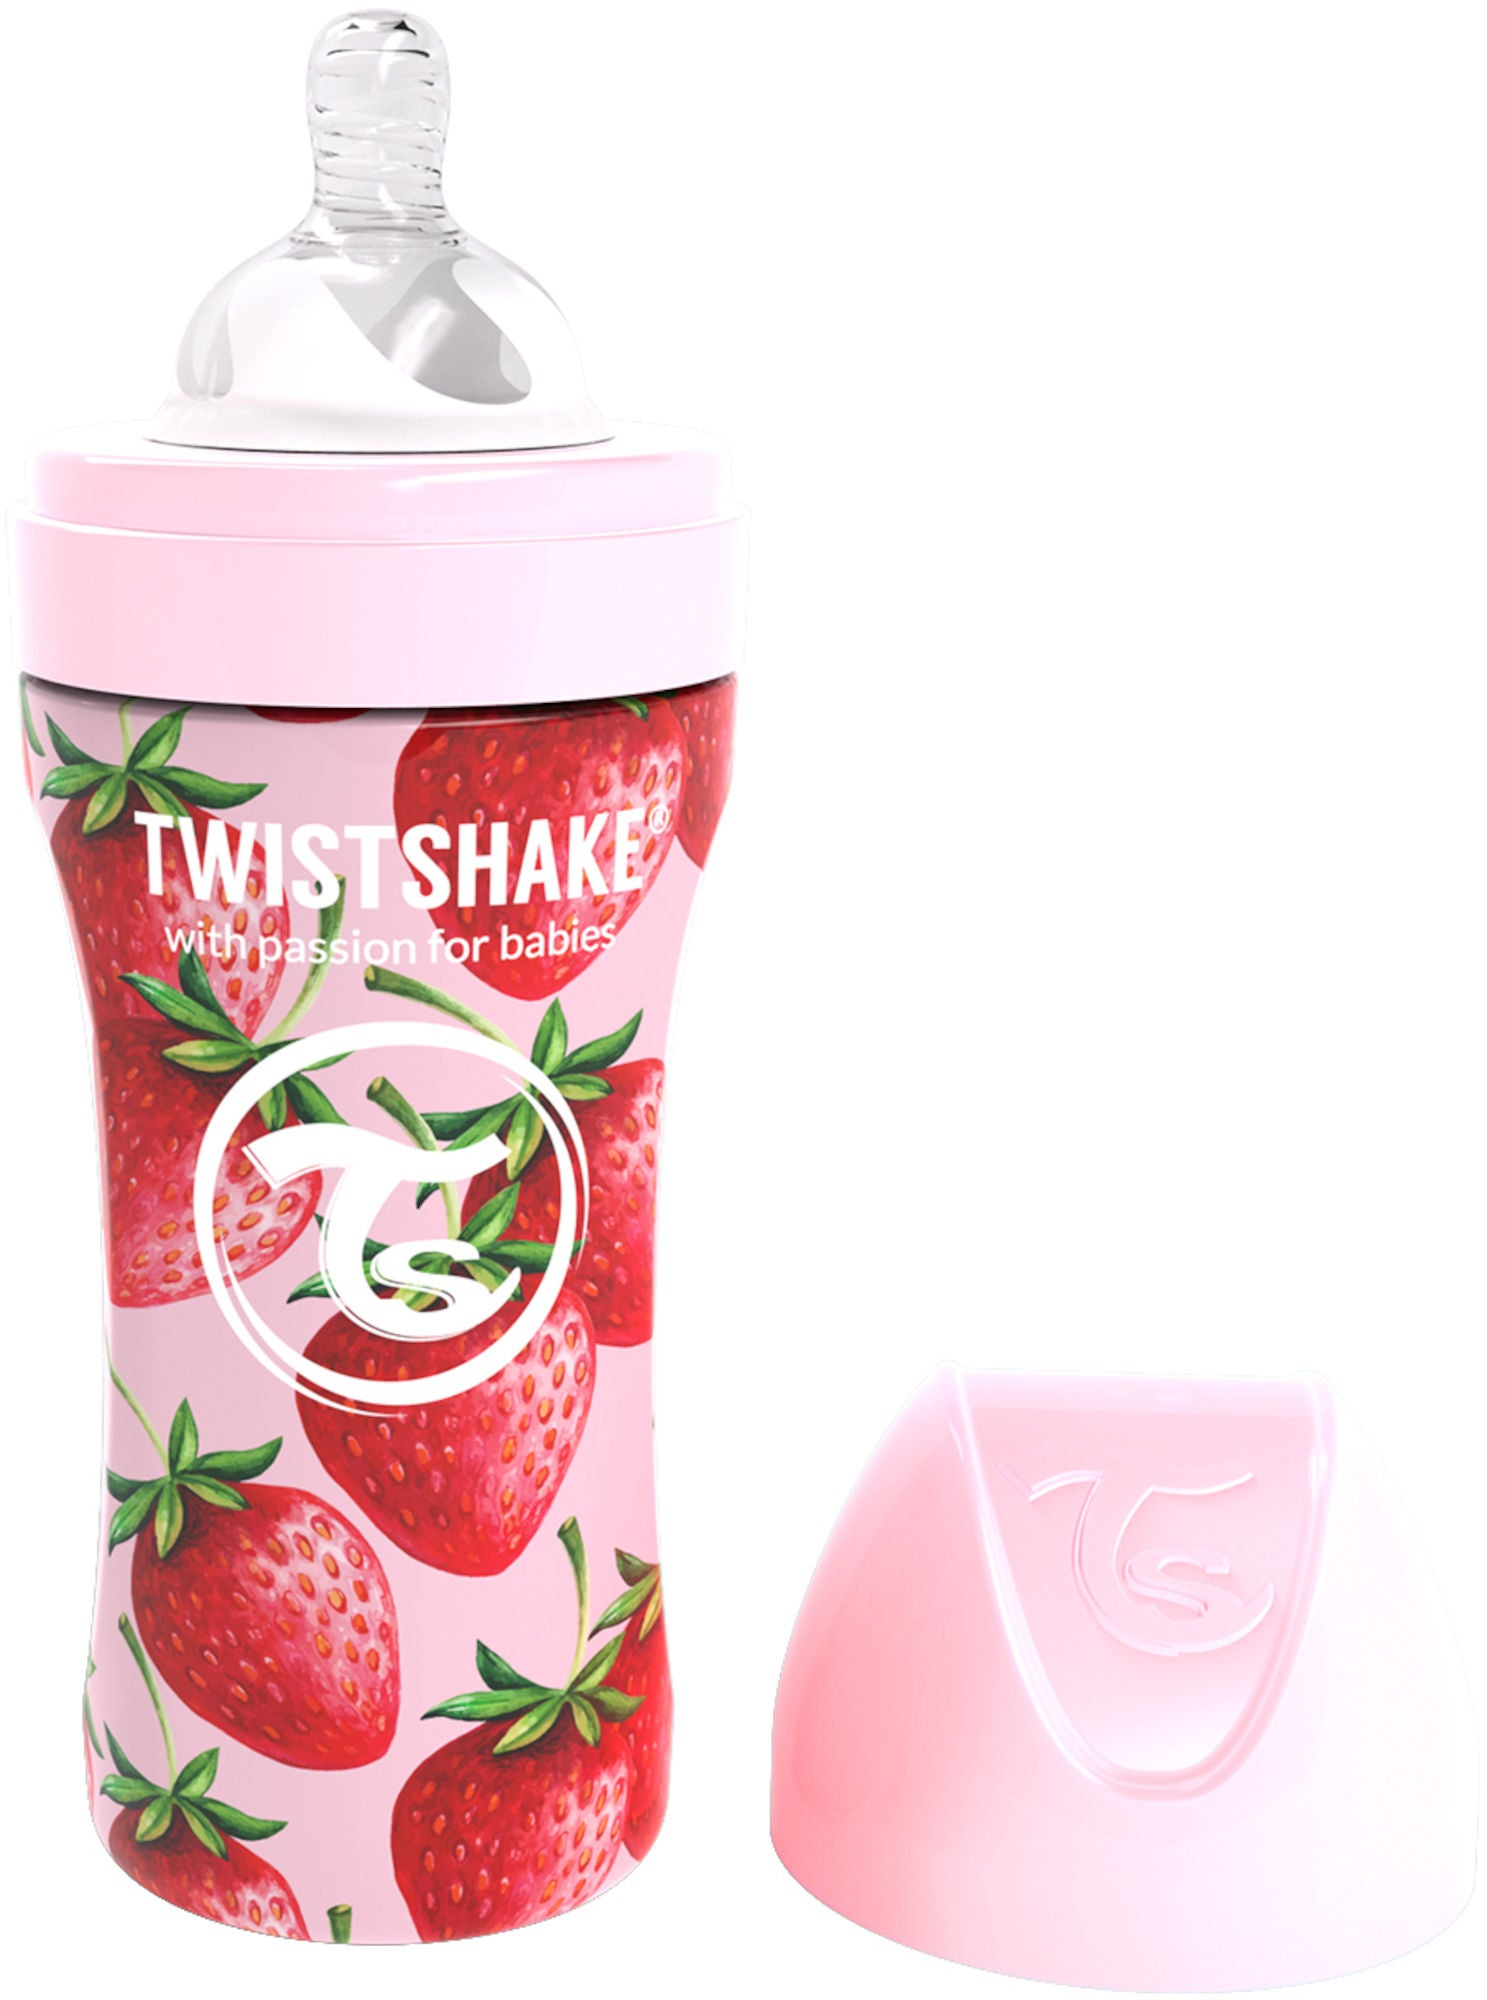 Twistshake Anti-Colic Stainless Steel Sutteflaske 330ml, Strawberry